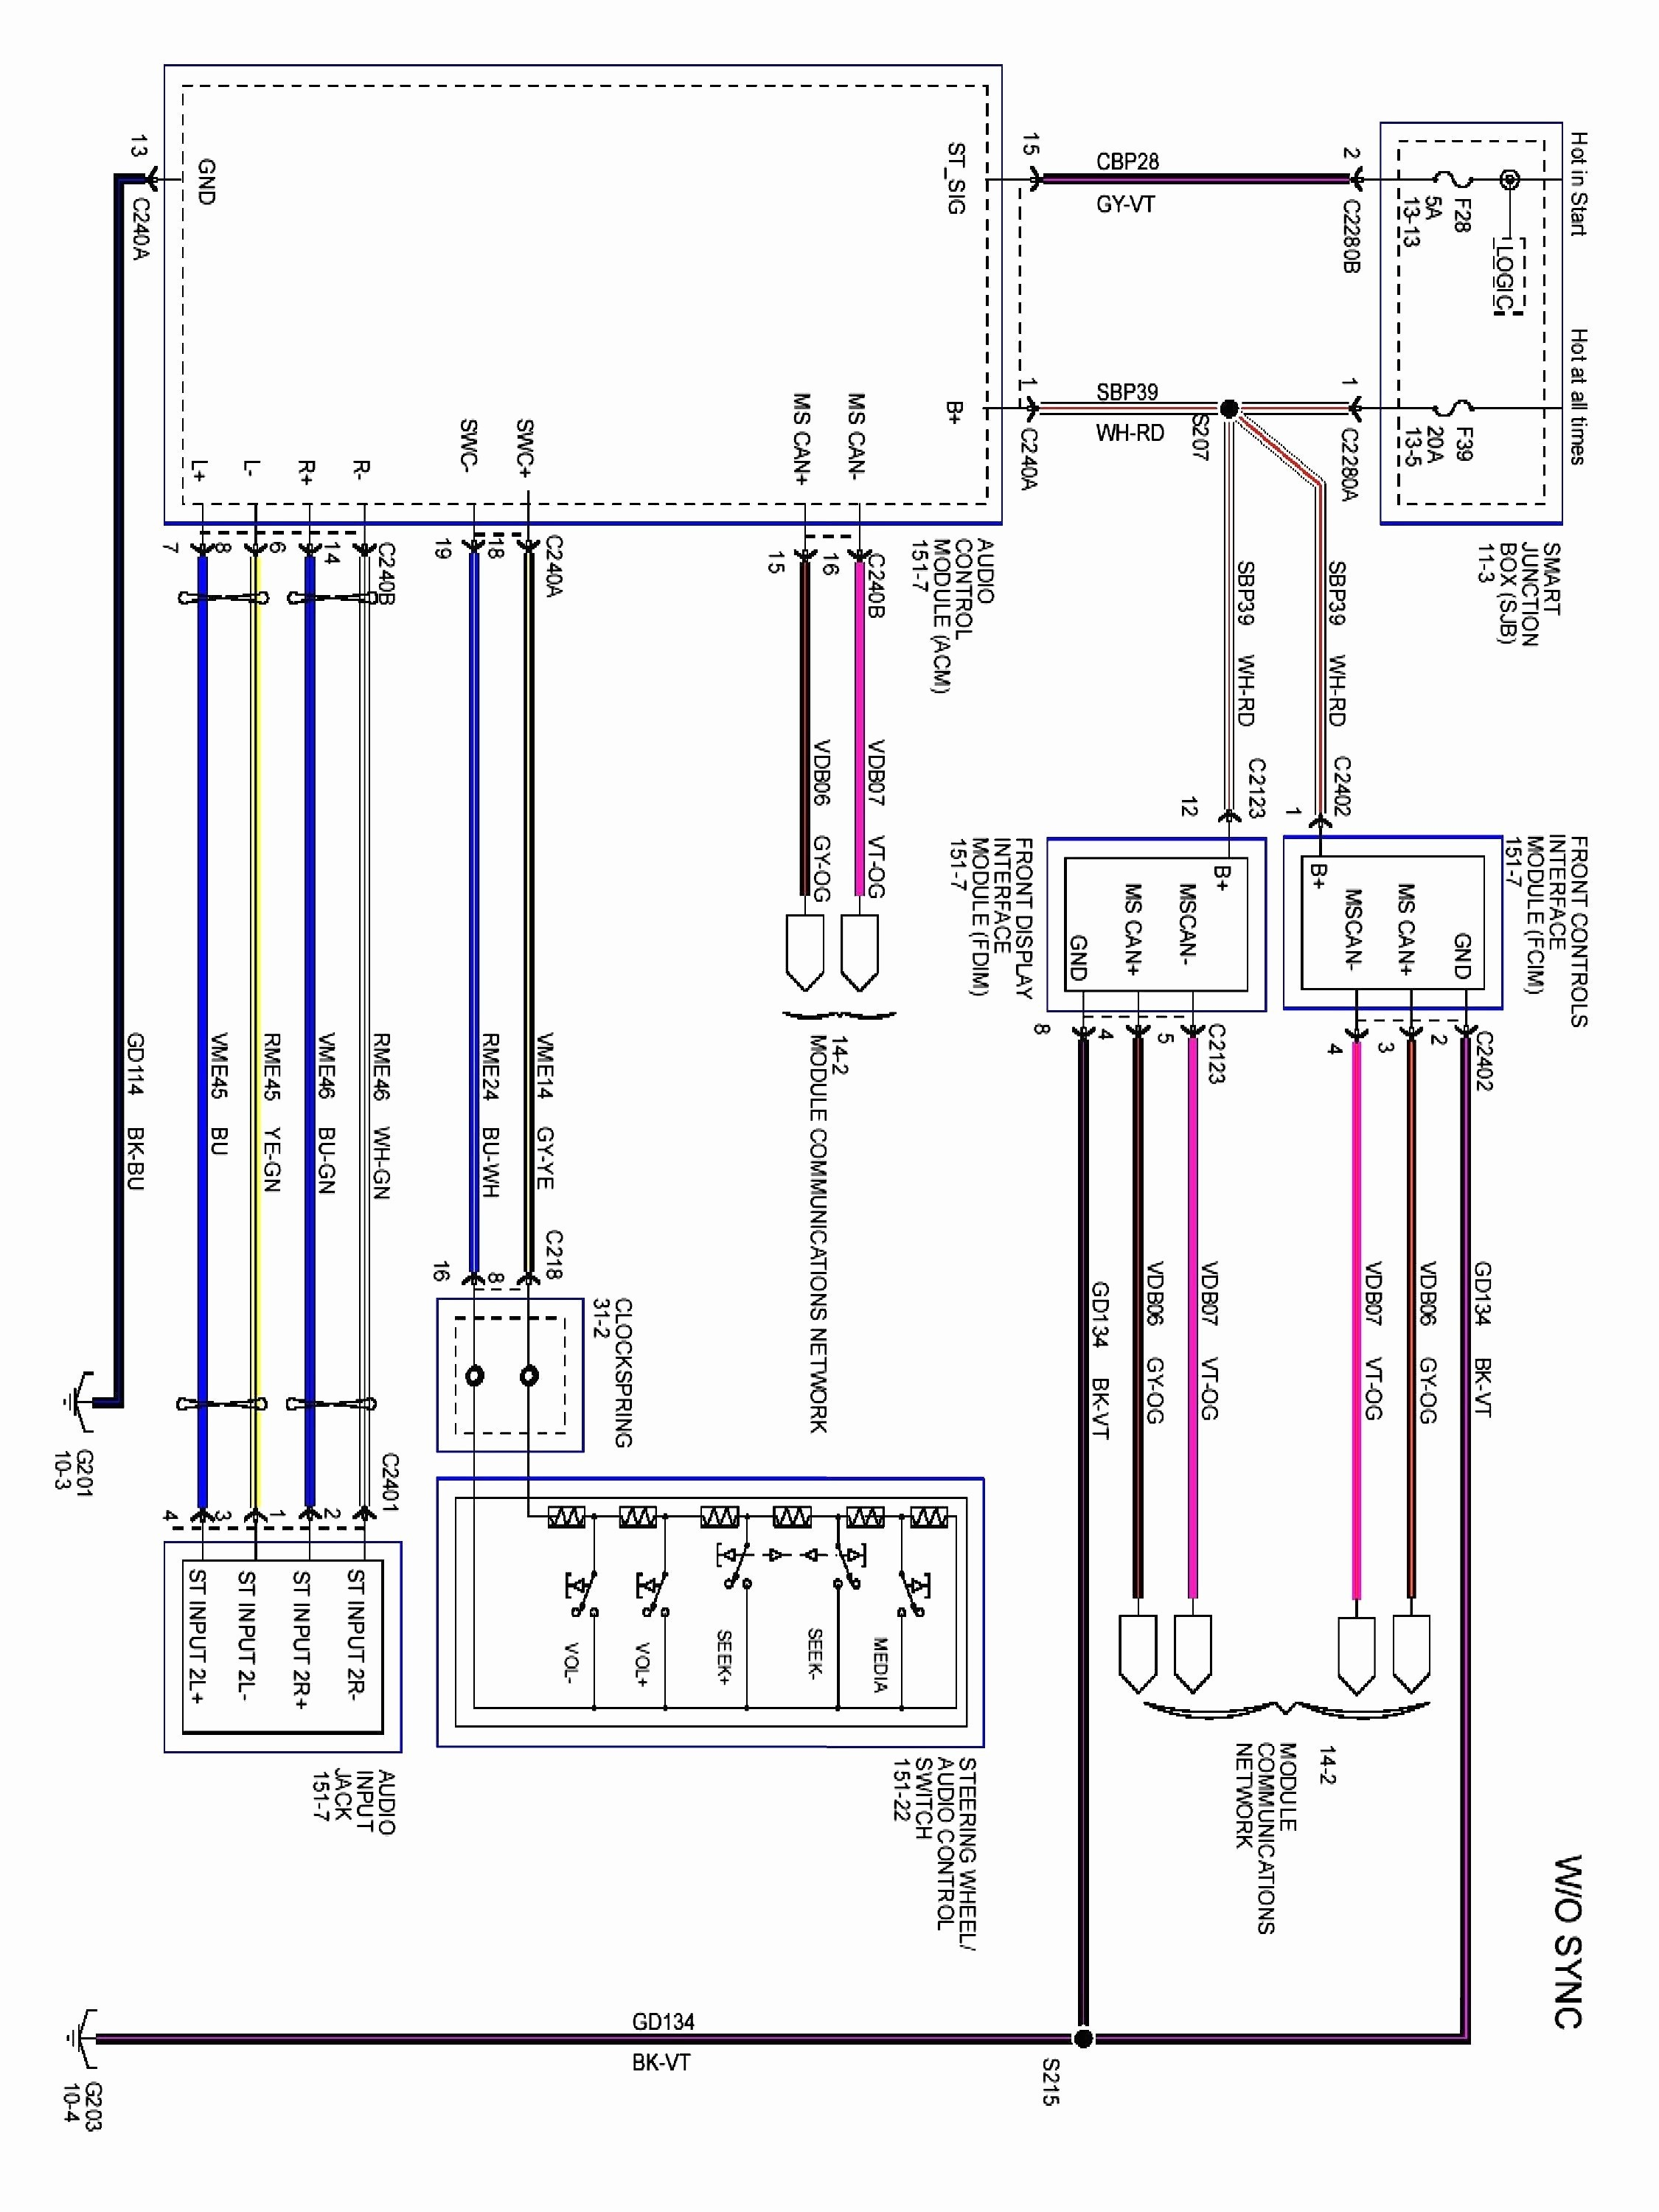 Diagram Of Car Controls Car Amp Wiring Diagram